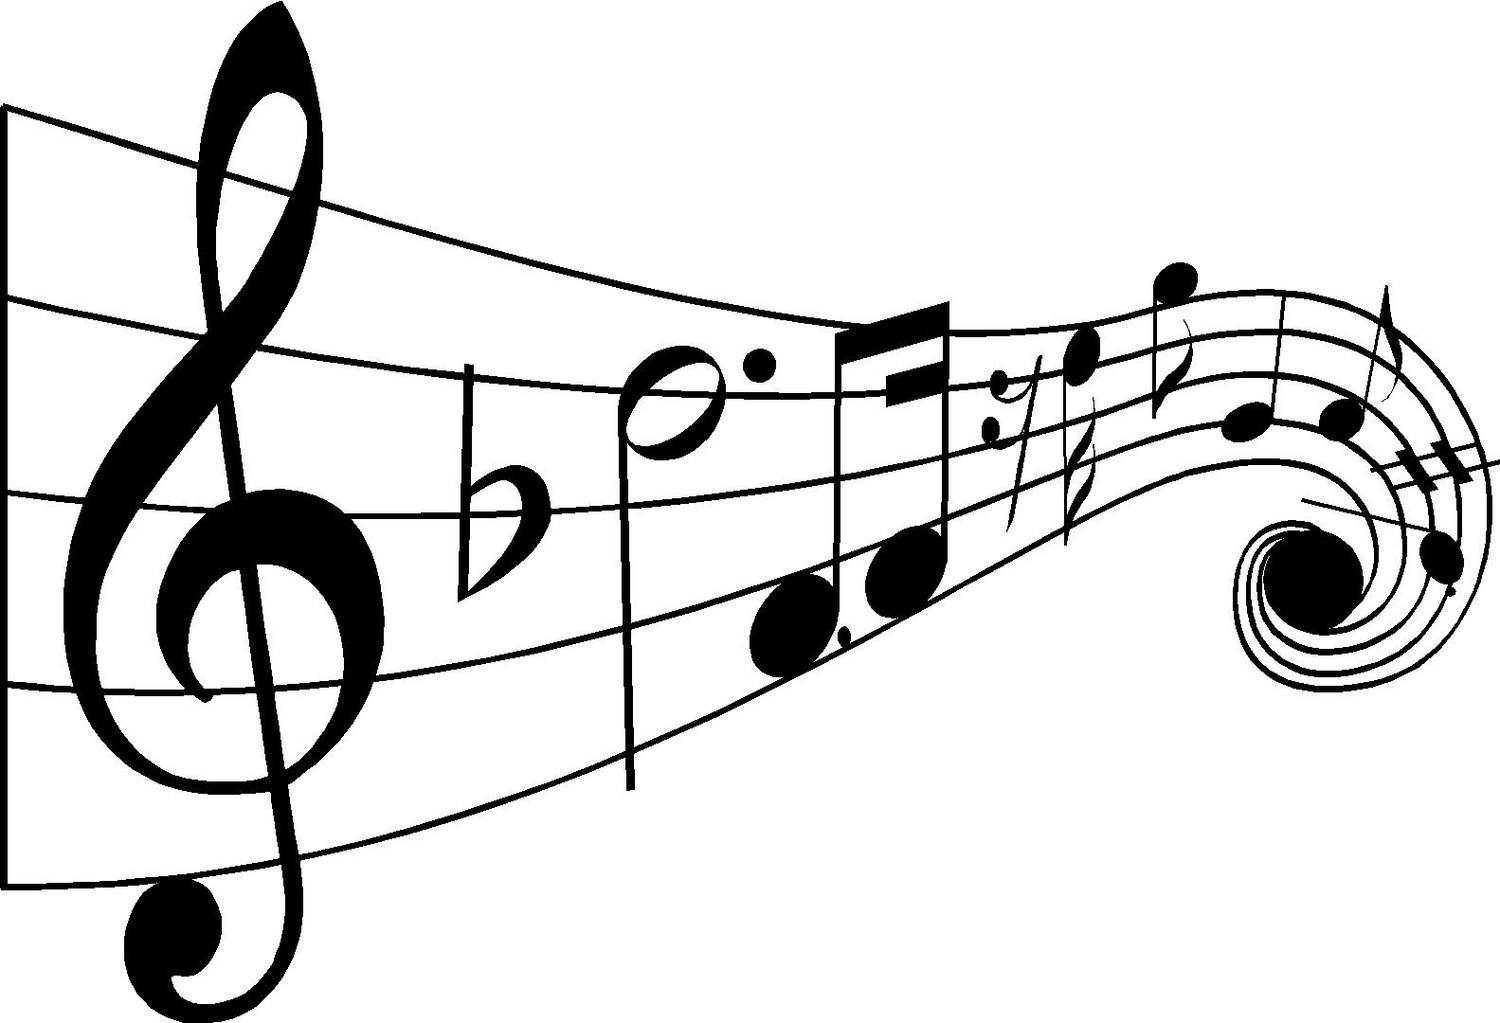 Free Music Notes Art, Download Free Clip Art, Free Clip Art.